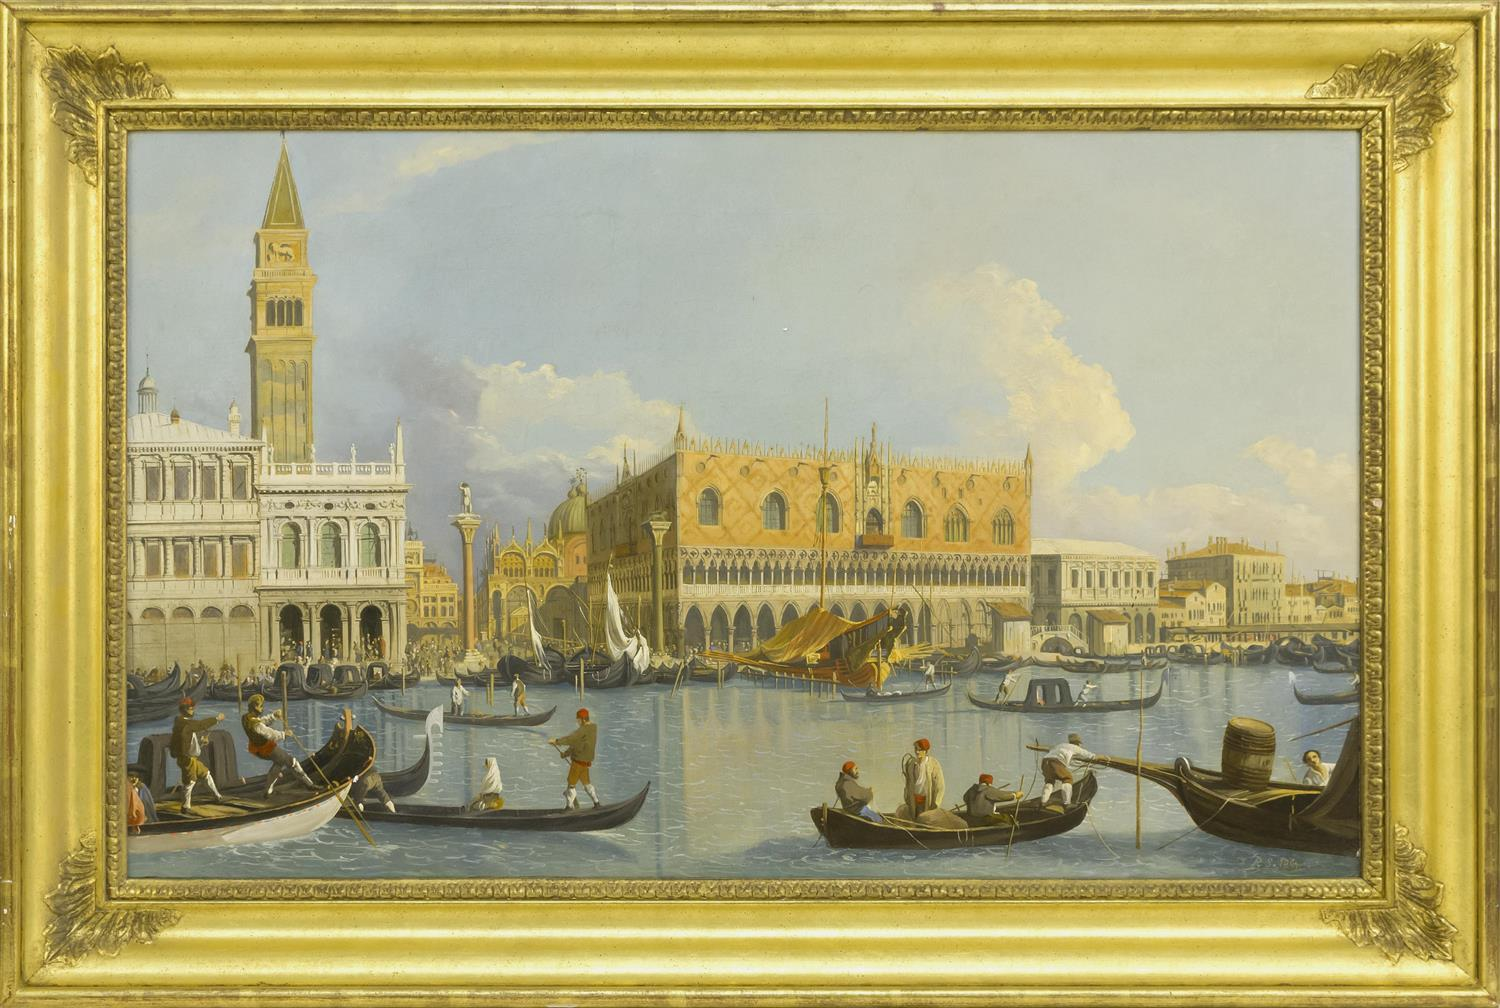 "ROBERT SALMON, England/Massachusetts, 1775- c. 1851, Il Molo, Venice, from the Bacino di San Marco., Oil on canvas, 19.75"" x 32.75""...."